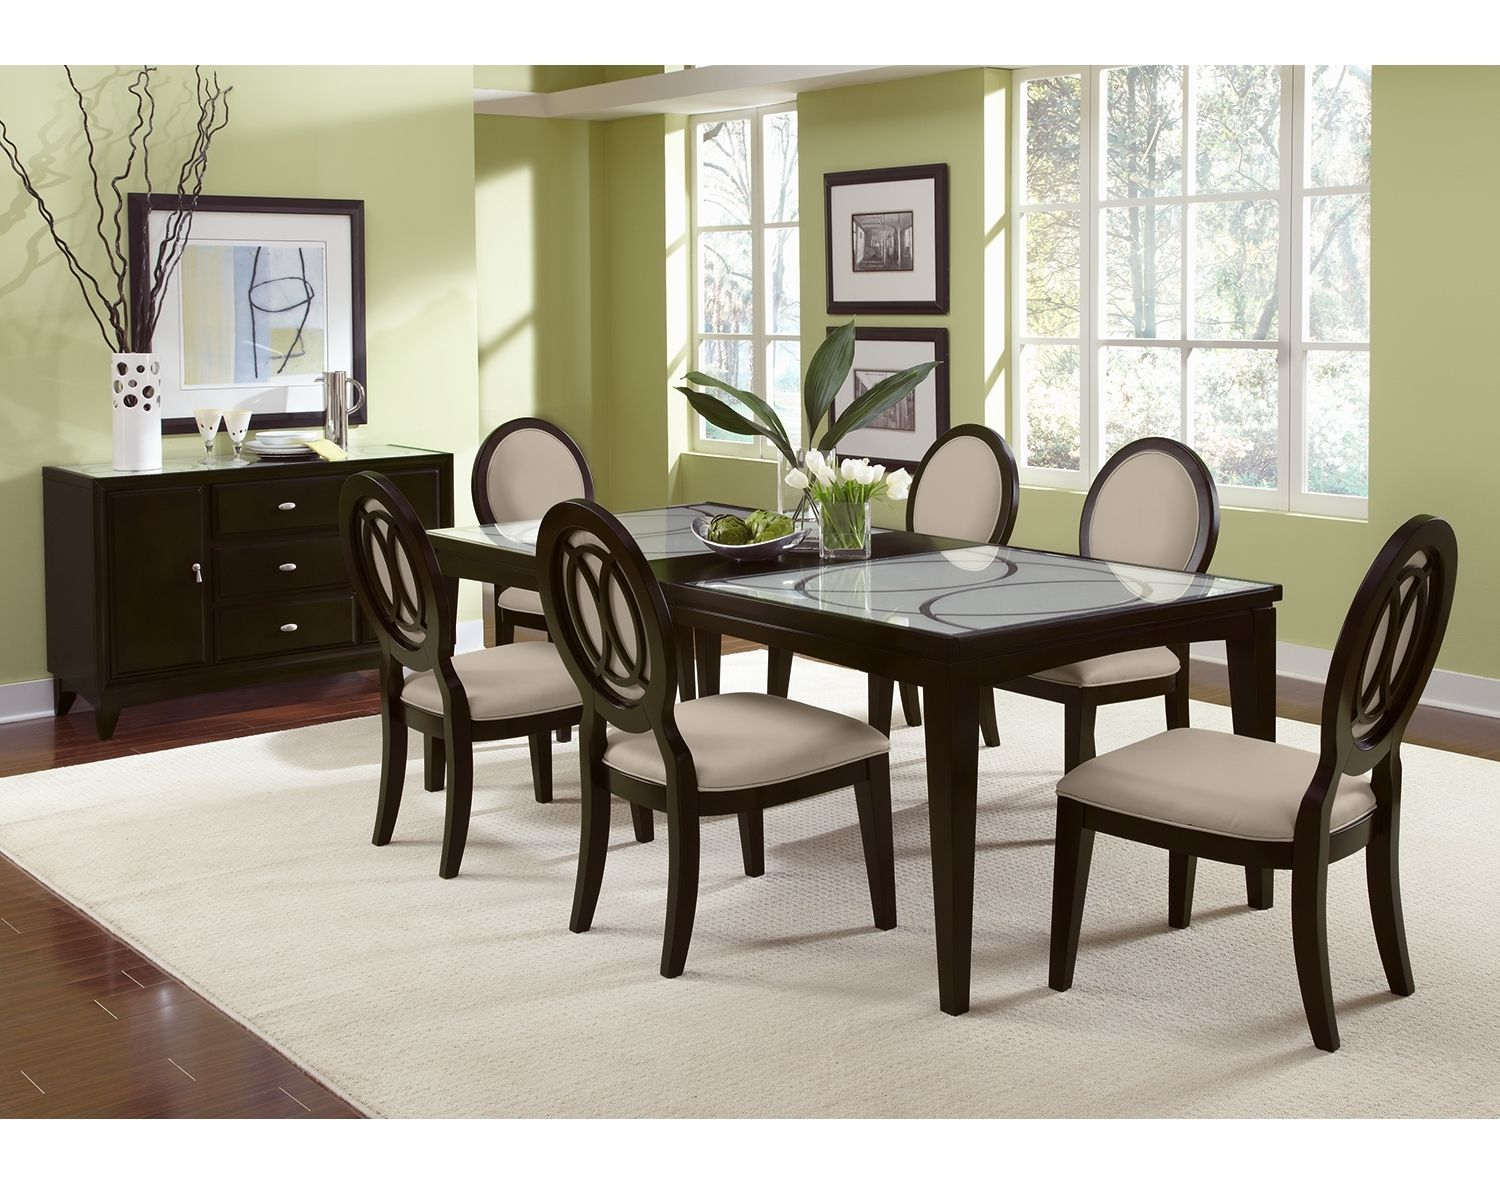 City Furniture White Dining Room Set  Httpfmufpi Pleasing City Furniture Dining Room Design Decoration